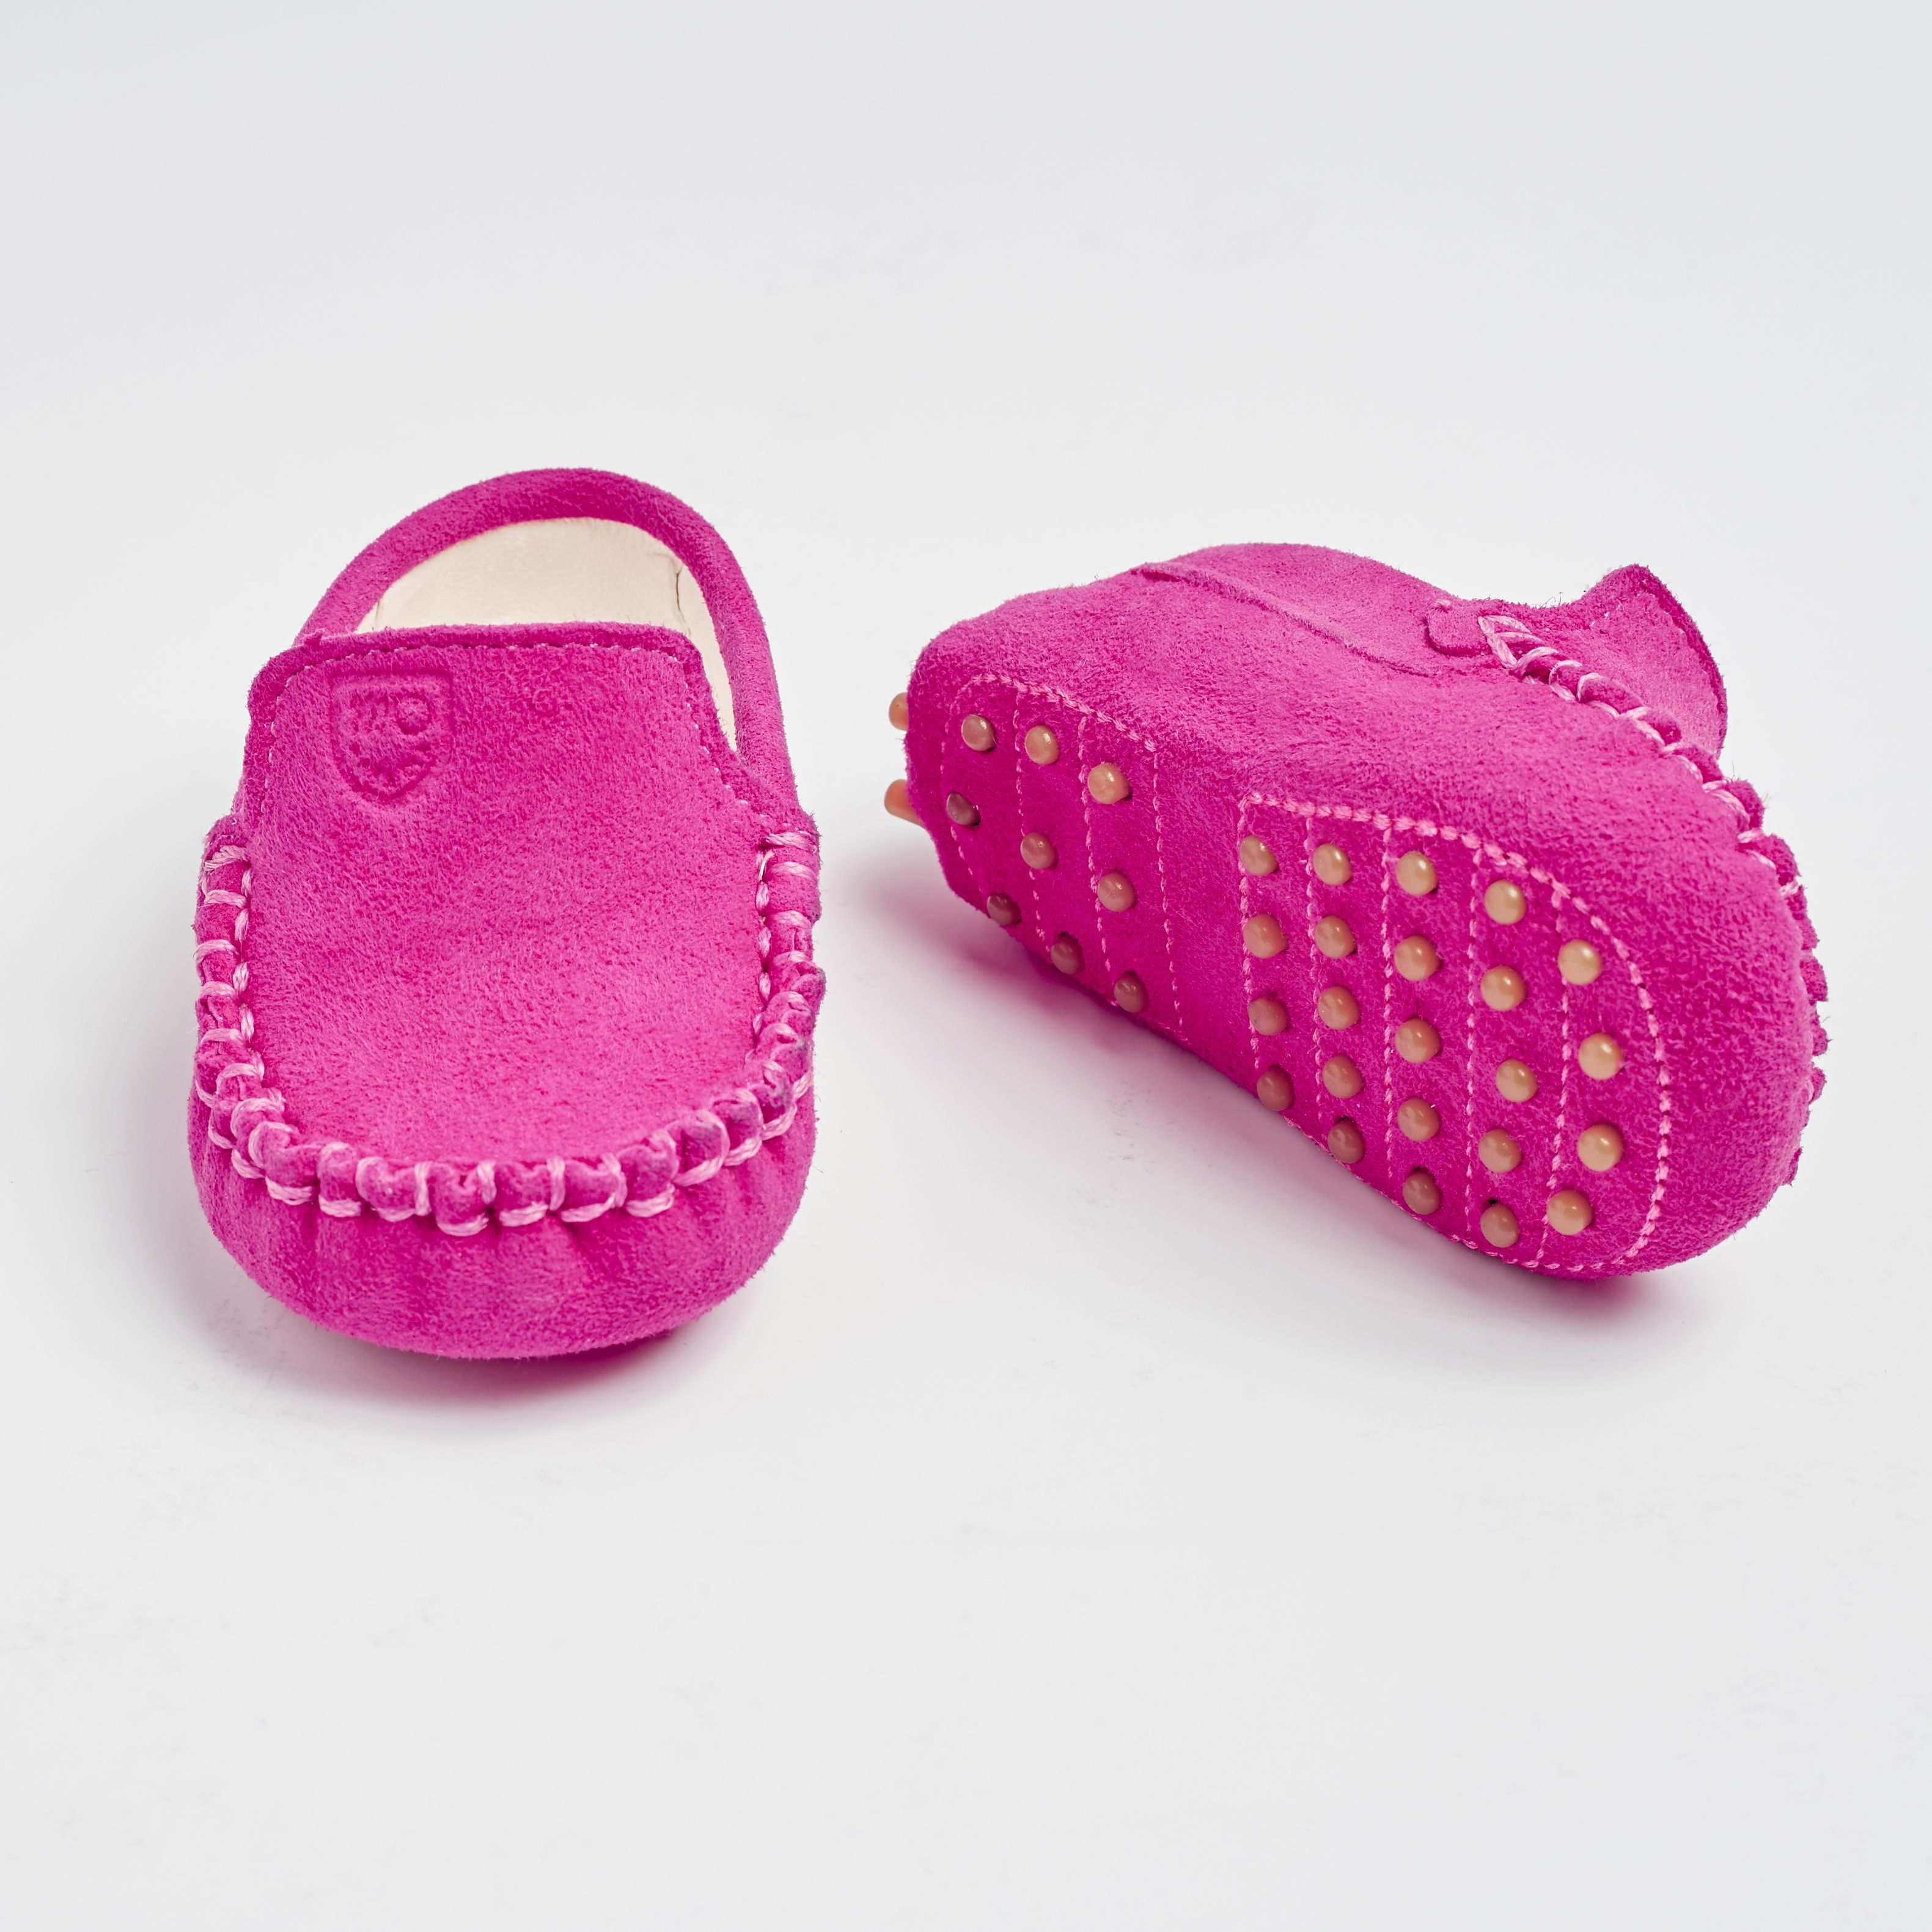 TOT MOCCASINS ecofriendly baby shoes pink suede! Baby